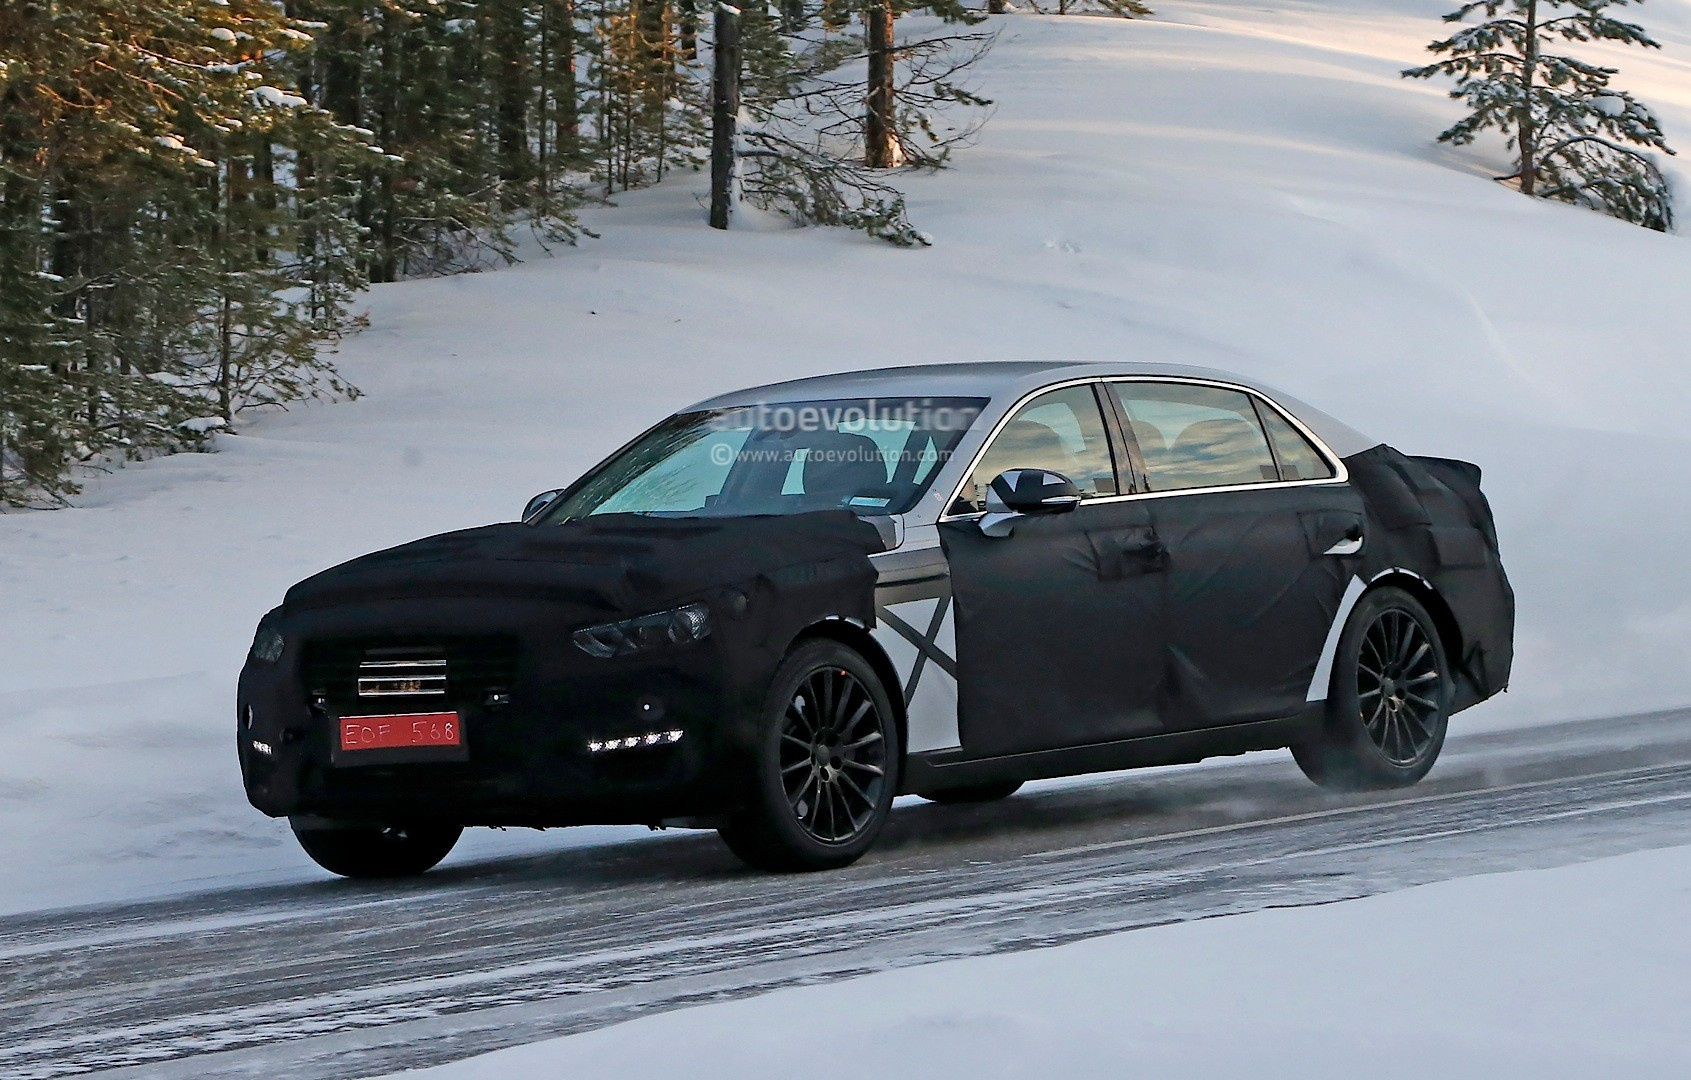 How To Pronounce Audi >> Spyshots: 2016 Hyundai Equus Spied with S-Class Inspired Taillights - autoevolution